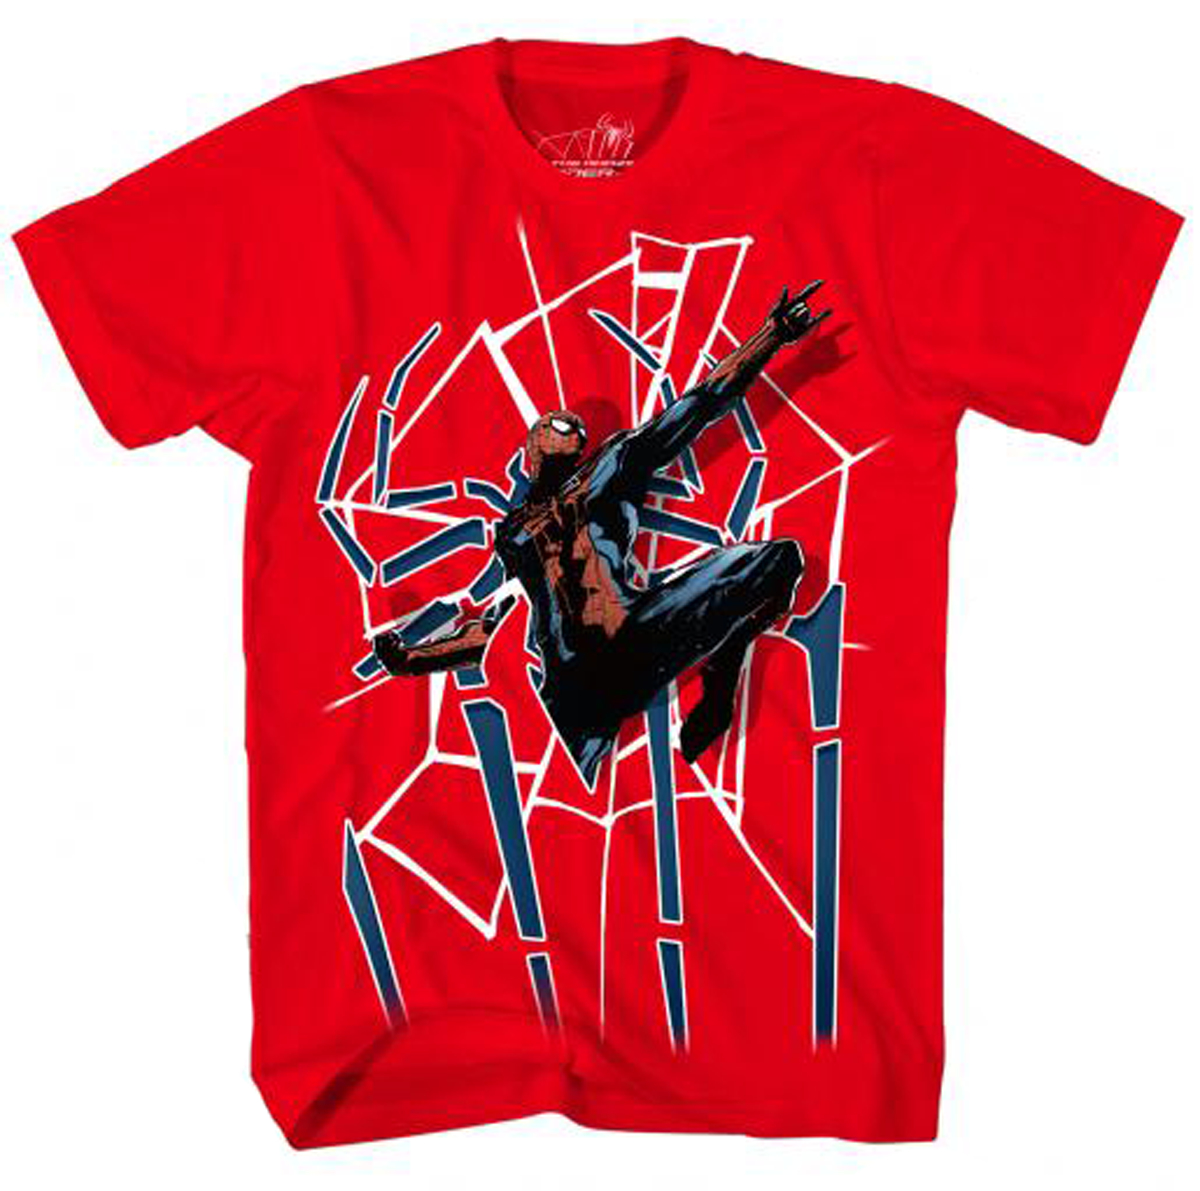 AMAZING SPIDER-MAN SPIDER DOOR RED T/S MED